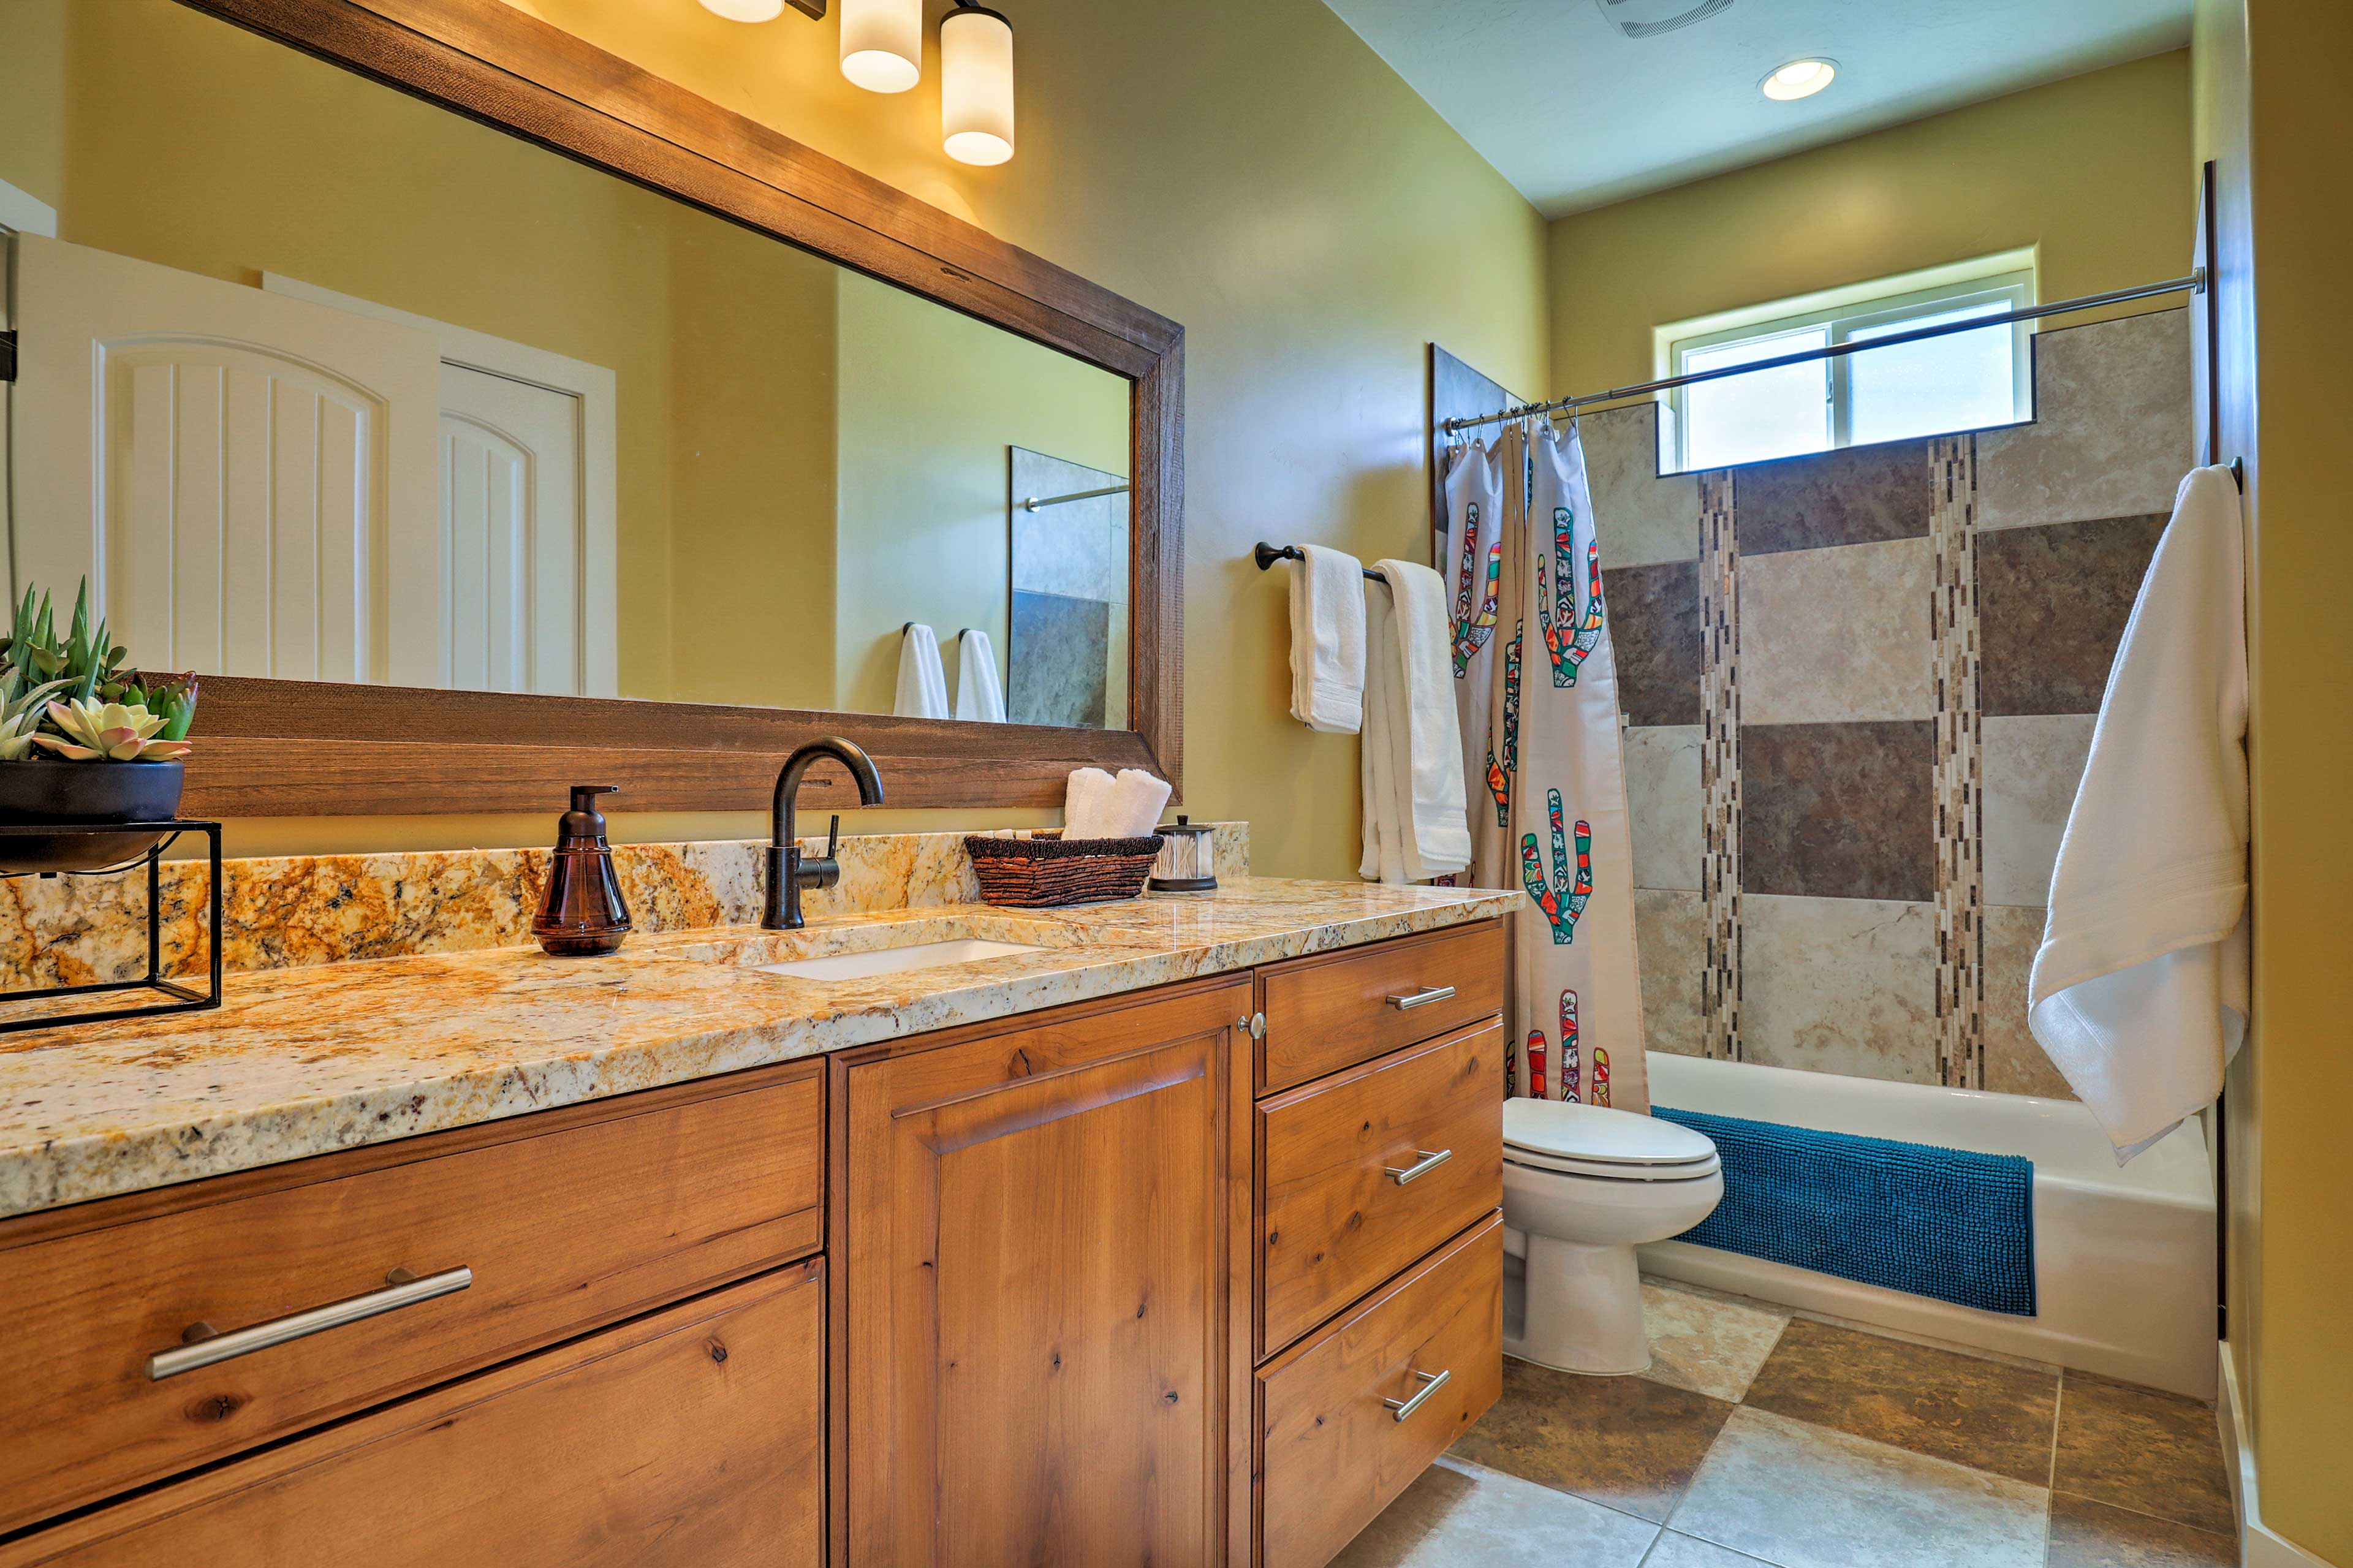 This bathroom has a shower/tub combo and a large vanity.